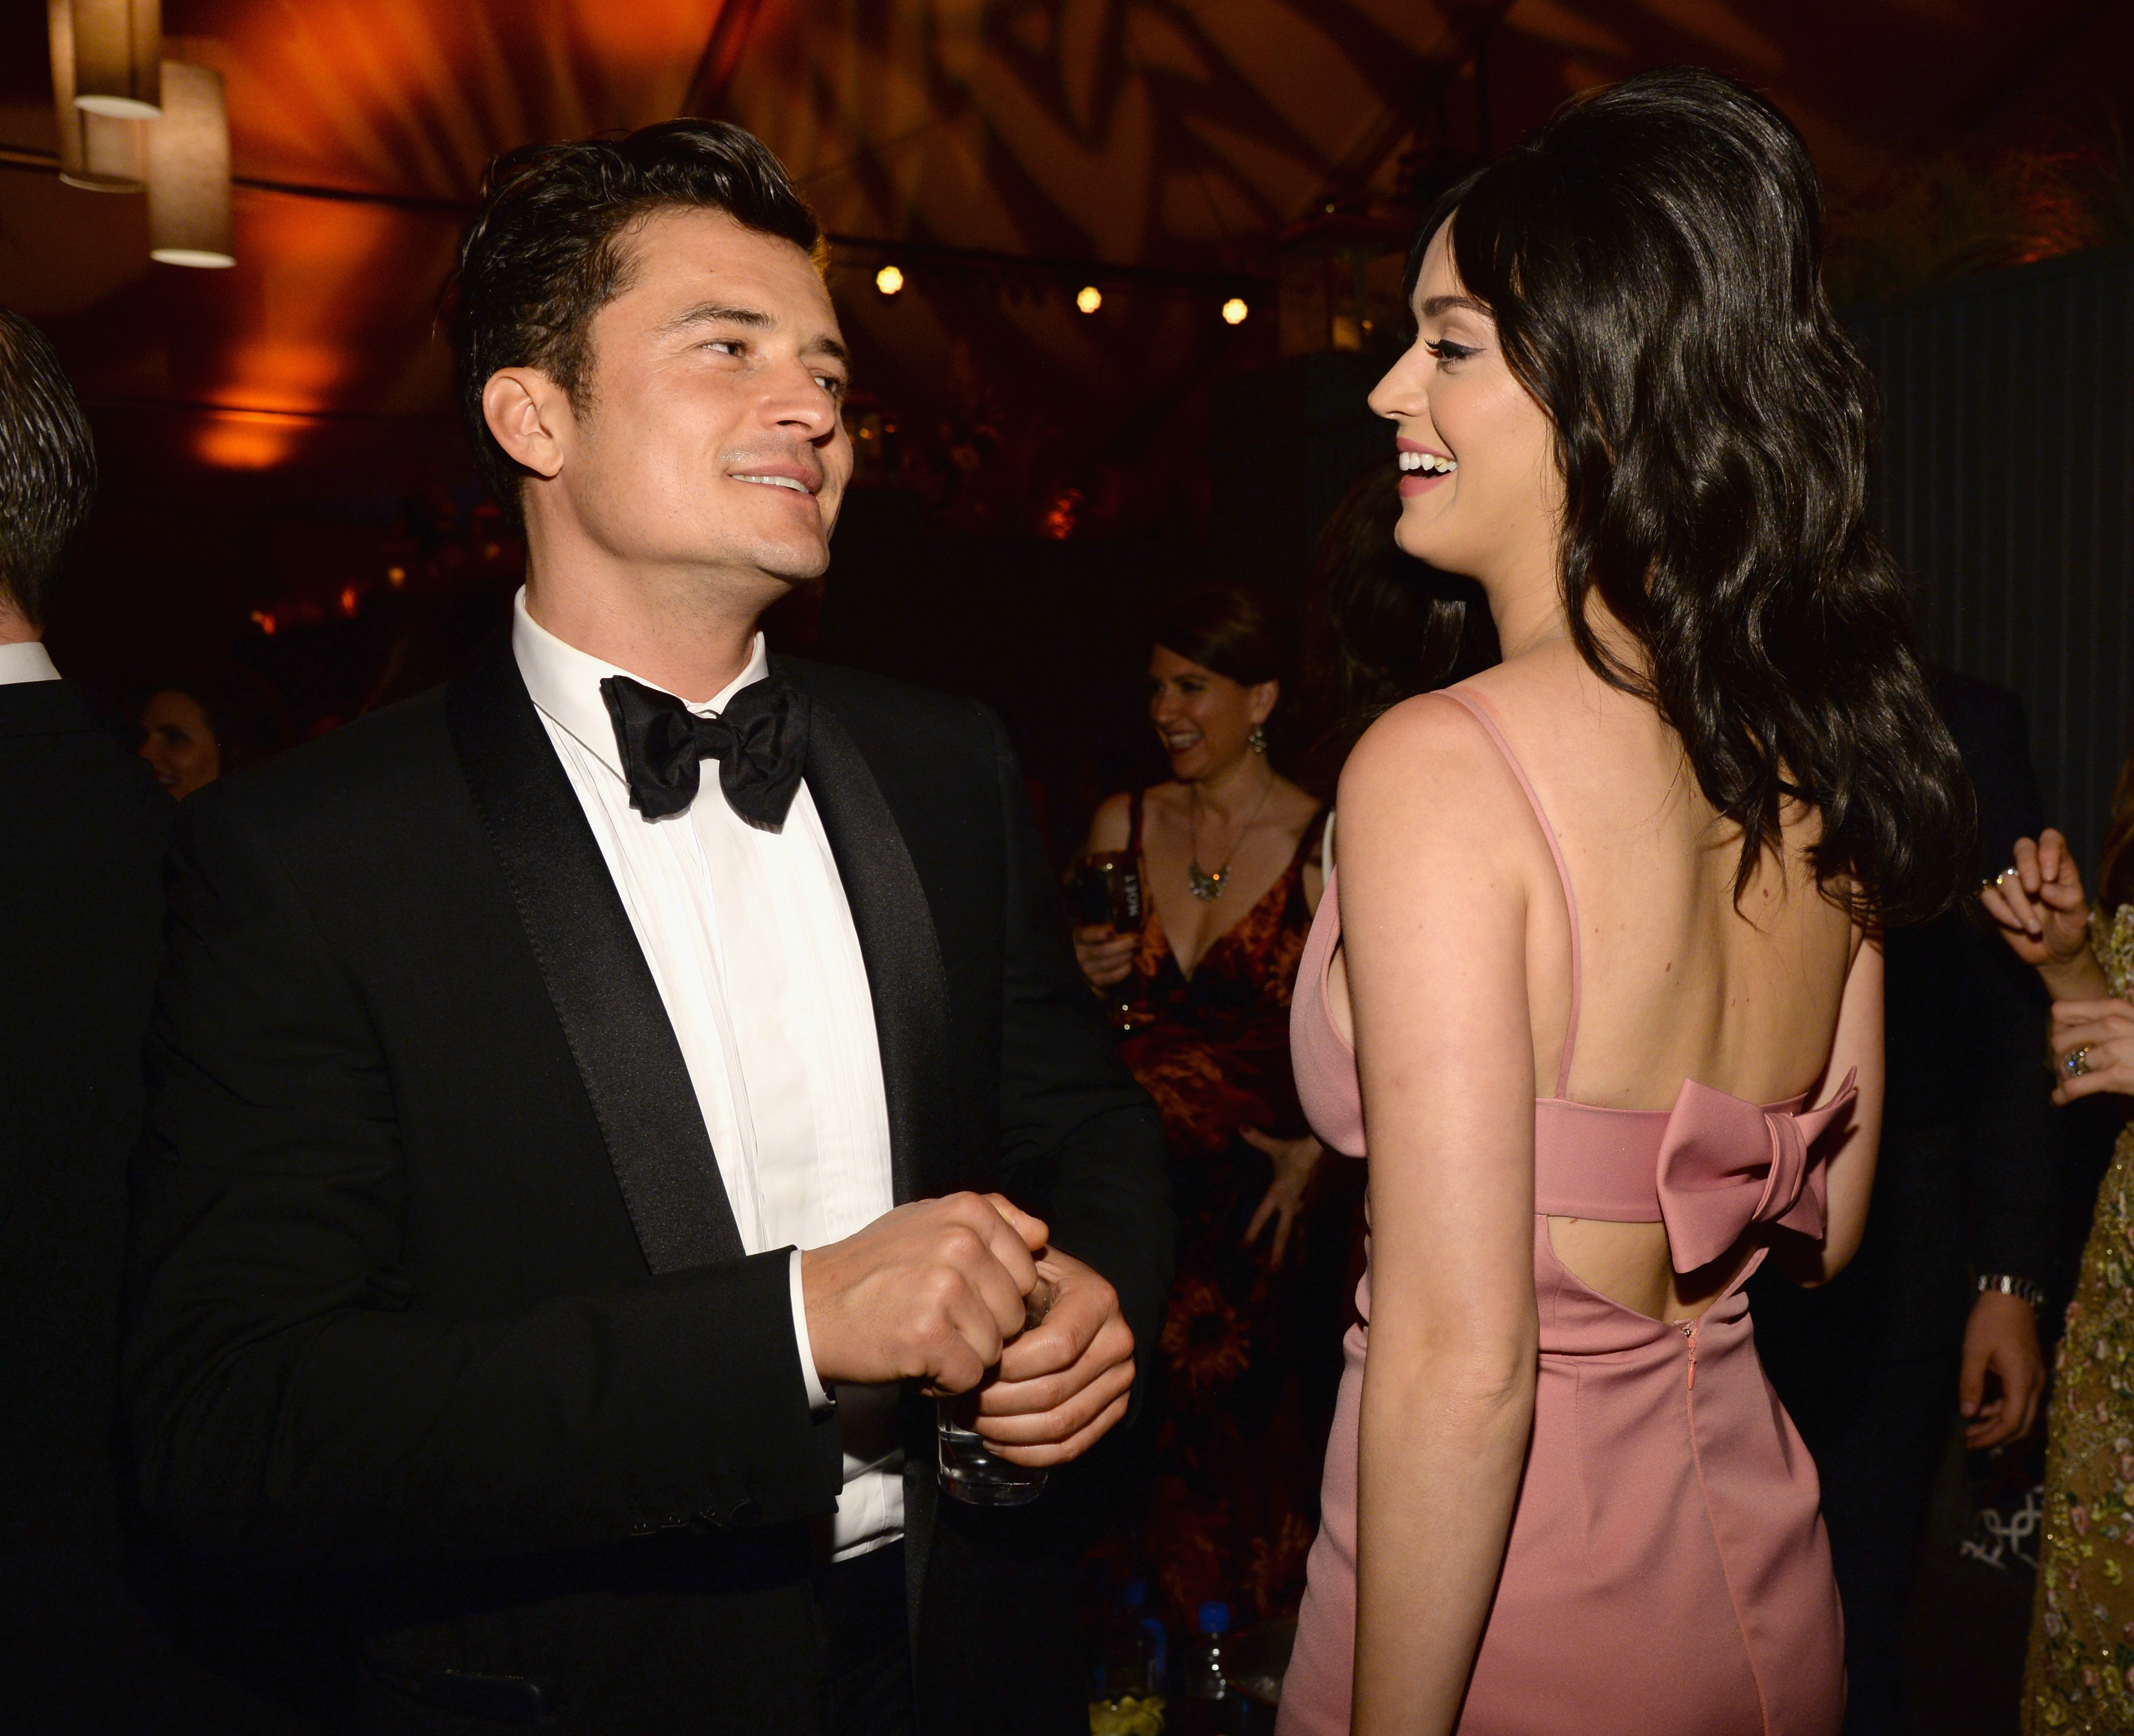 BEVERLY HILLS, CA - JANUARY 10: Orlando Bloom and Katy Perry attend The Weinstein Company and Netflix Golden Globe Party, presented with DeLeon Tequila, Laura Mercier, Lindt Chocolate, Marie Claire and Hearts On Fire at The Beverly Hilton Hotel on January 10, 2016 in Beverly Hills, California. (Photo by Kevin Mazur/Getty Images for The Weinstein Company)